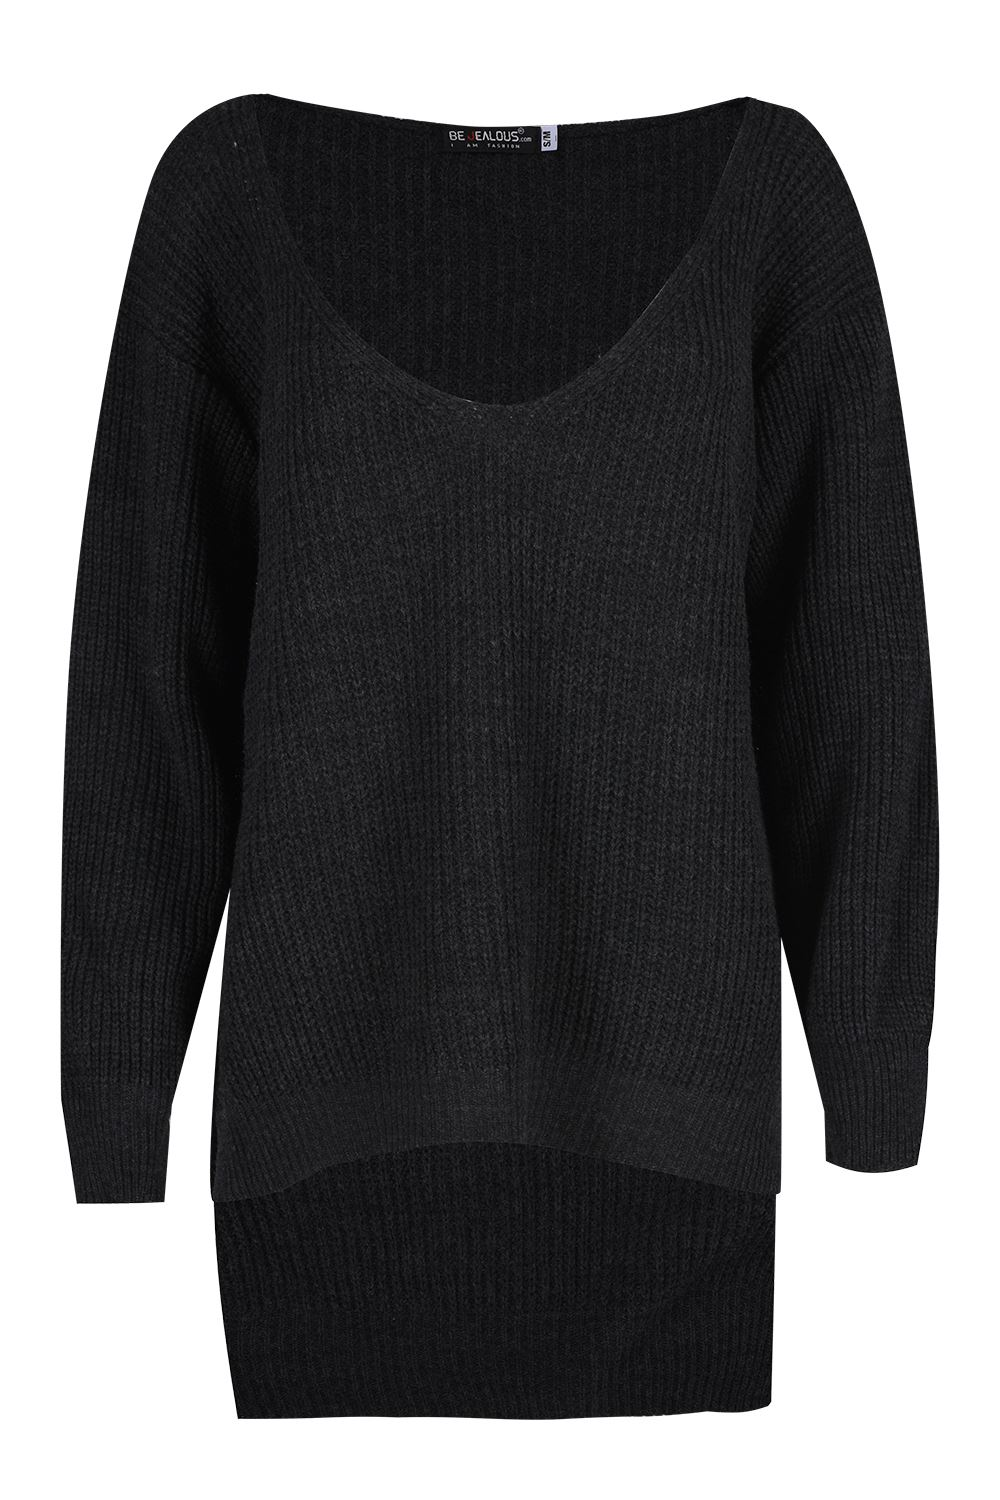 Ladies-Womens-Chunky-Knit-Oversized-Baggy-Long-Sleeve-V-Neck-High-Low-Jumper-Top